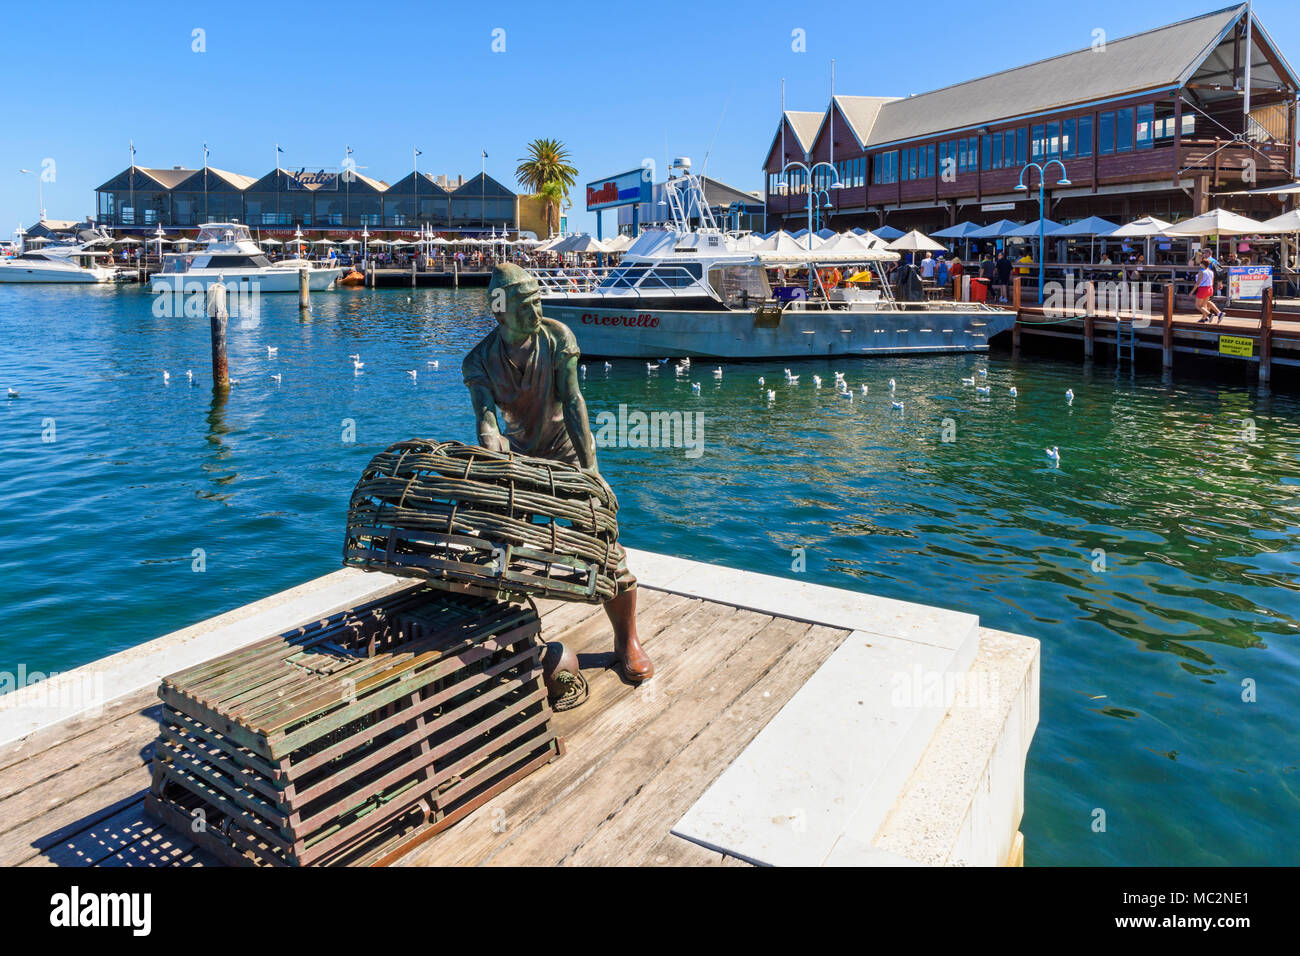 Fremantle Fishing Boat Harbour jetty and Fishermen memorial with views over to Cicerello's and Kalis Bros restaurants, Fremantle, Western Australia - Stock Image